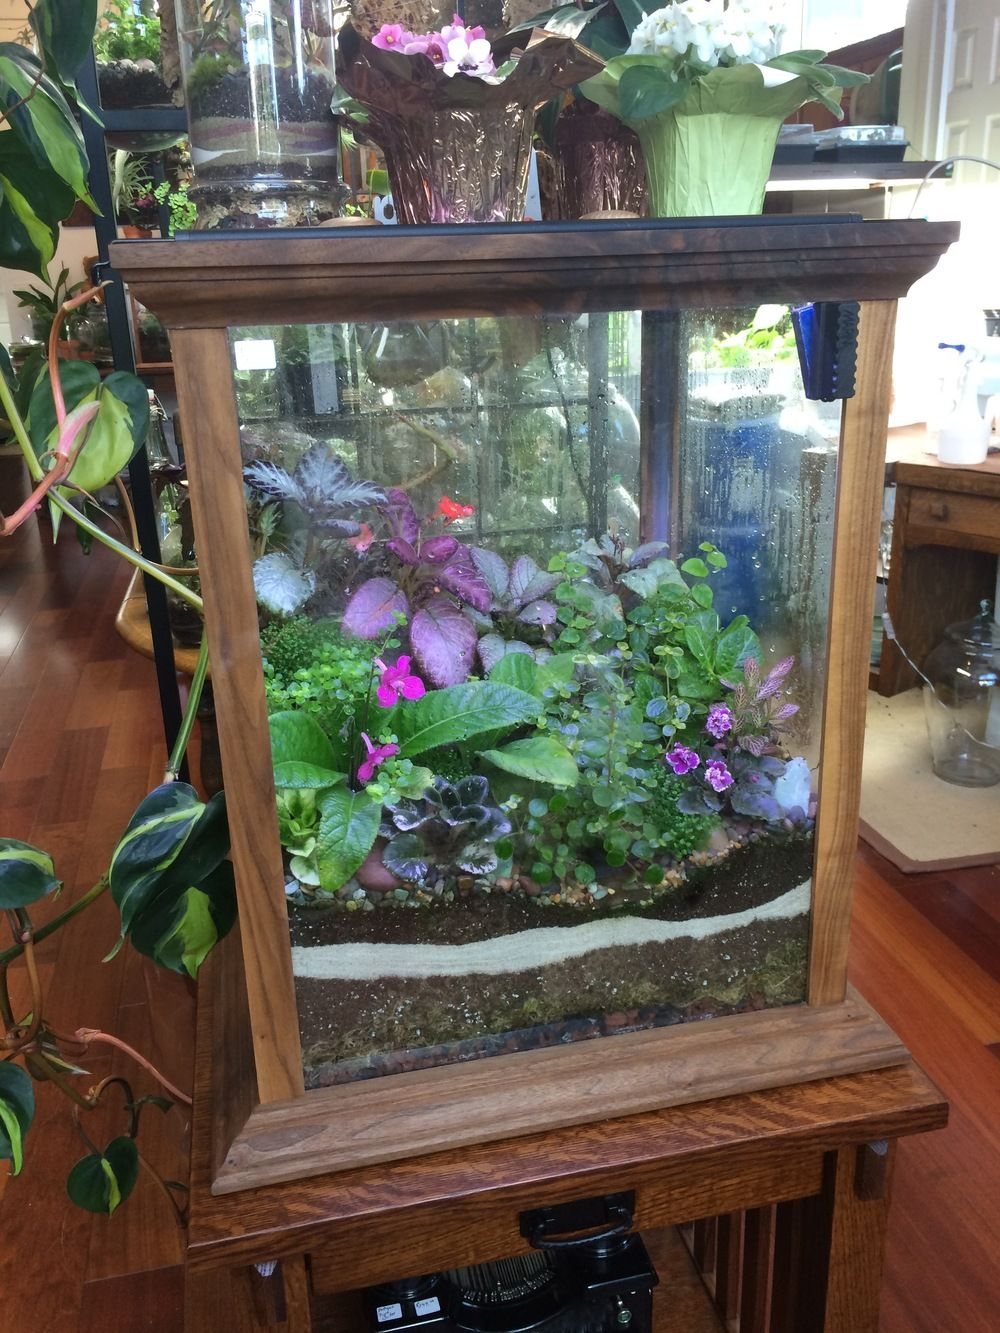 A Beautiful Terrarium With Deep Greens And Purples From